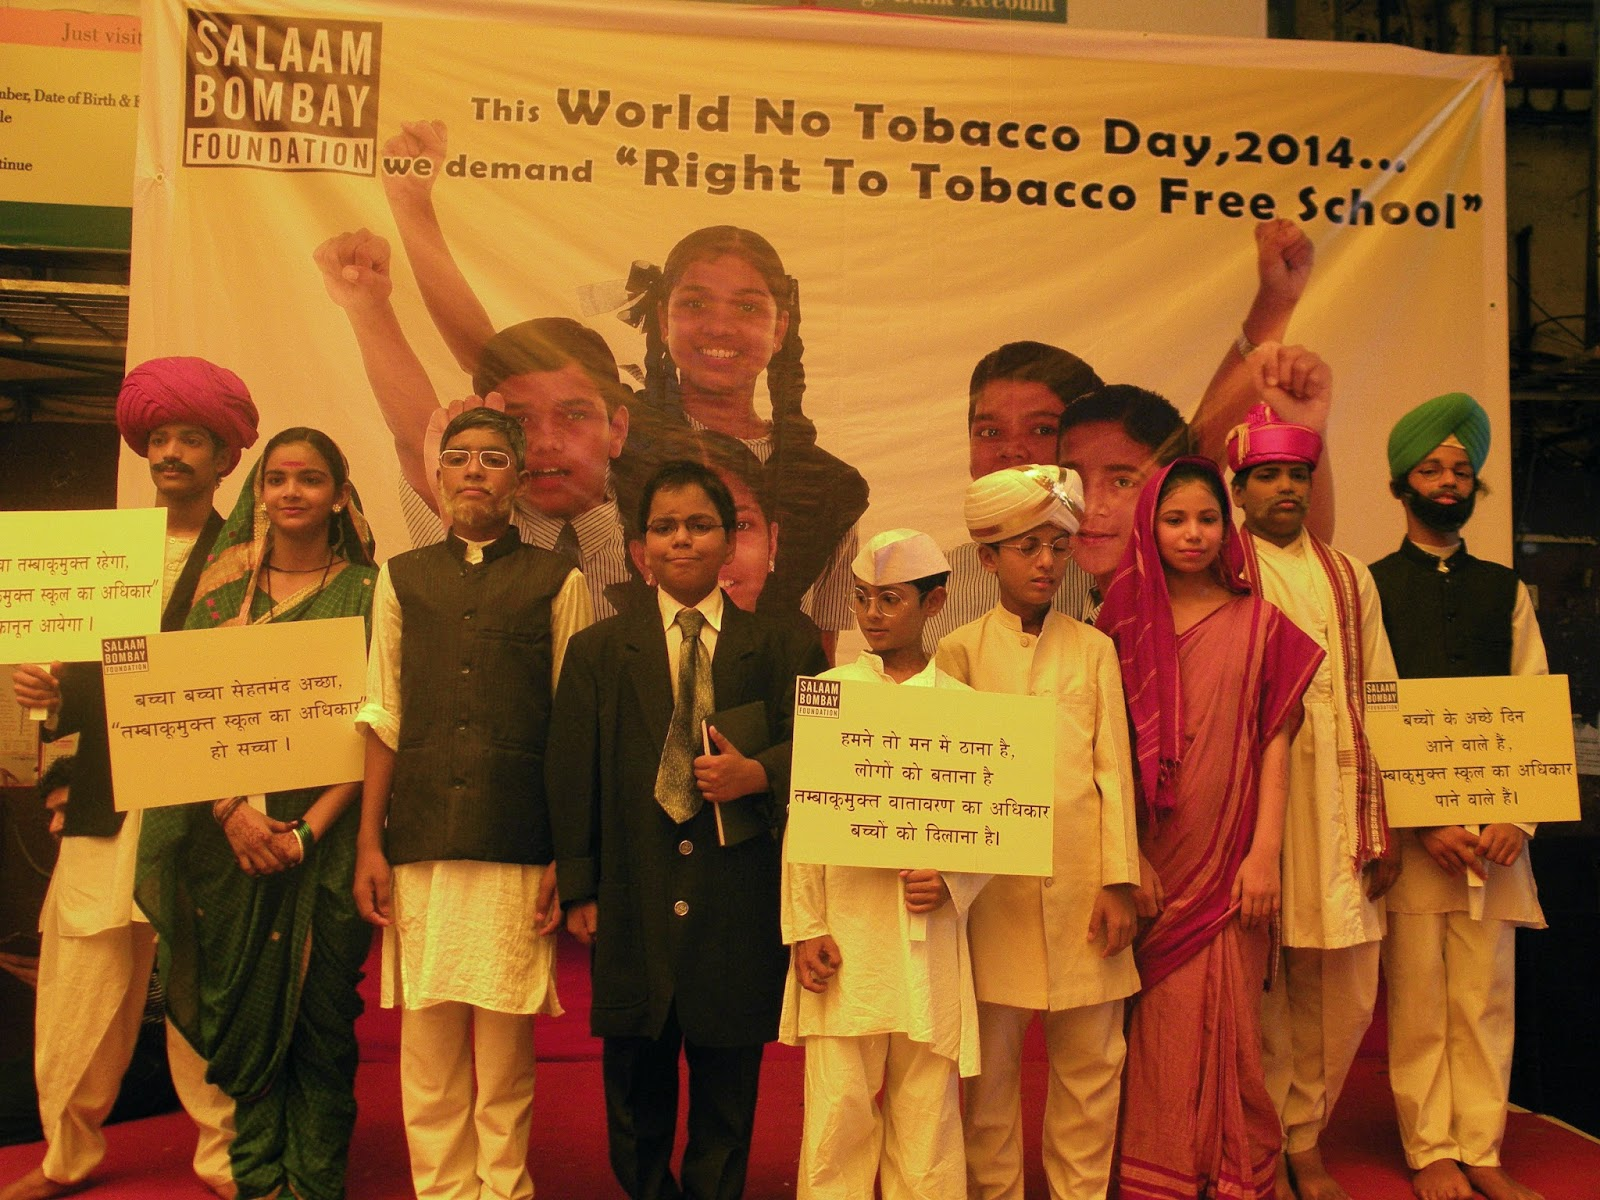 On the occasion of World No Tobacco Day, Children from Salaam Bombay